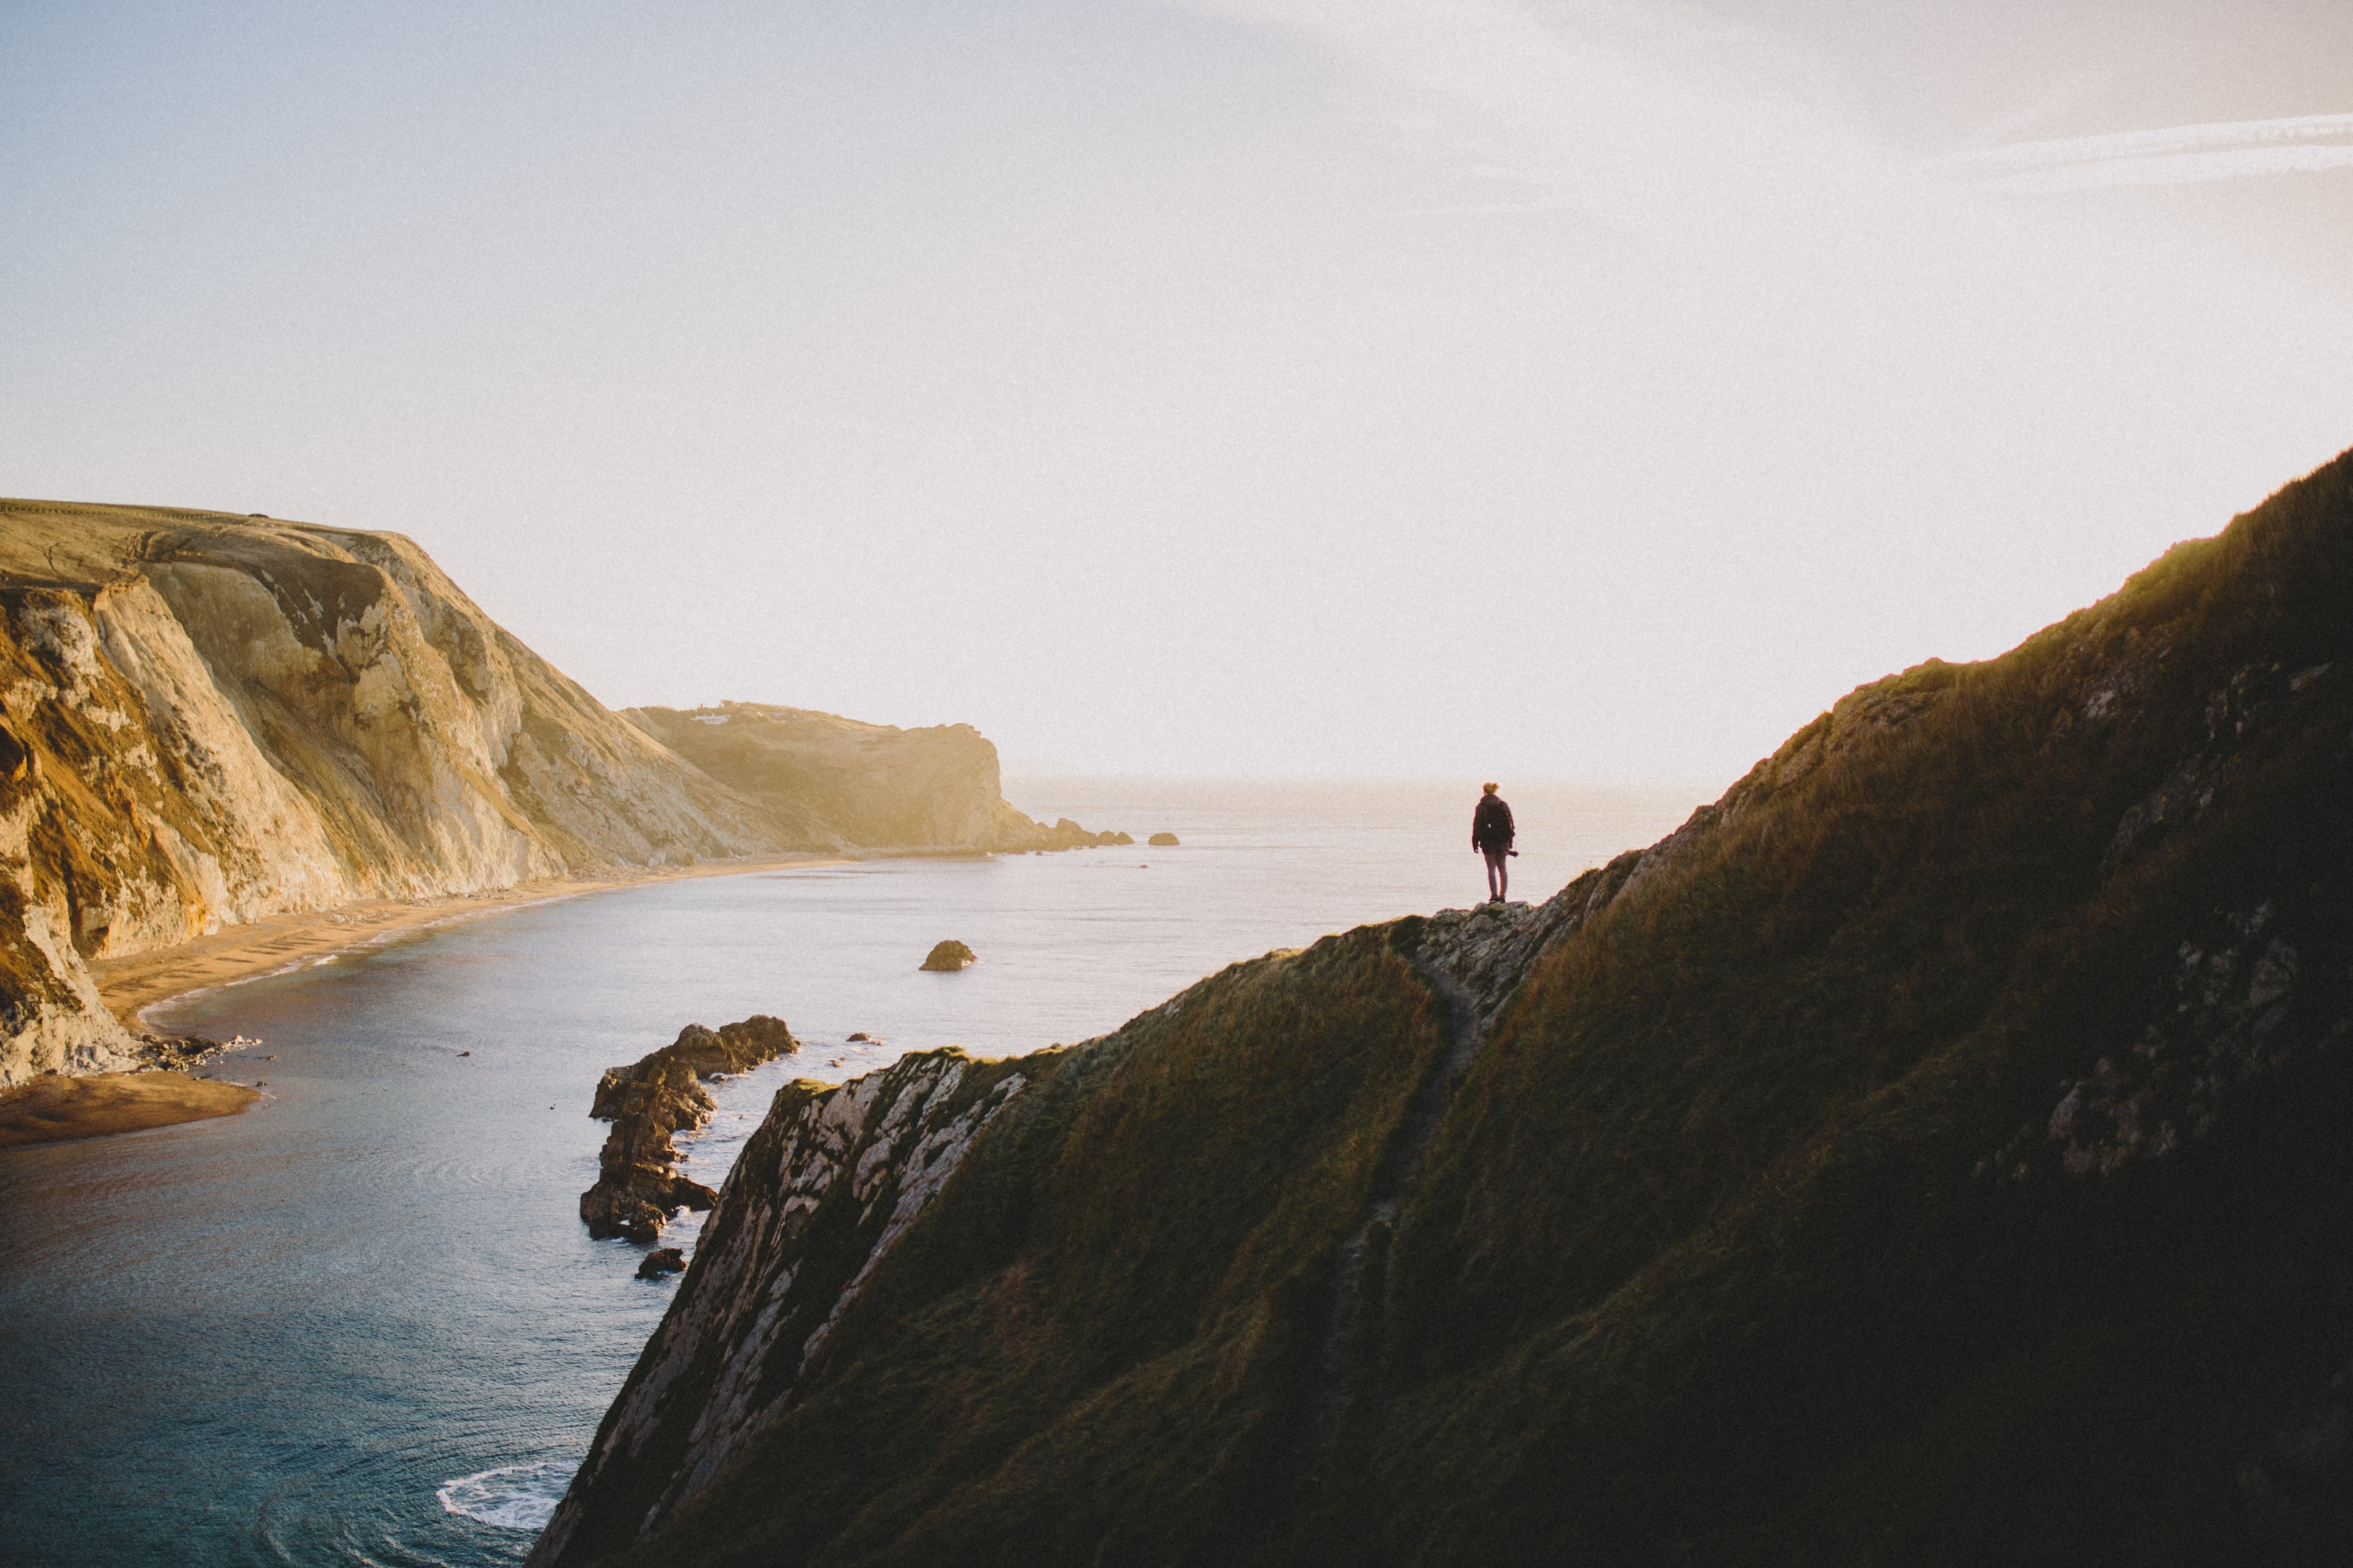 Person standing on the cliff overlooking the bay at the Durdle Door